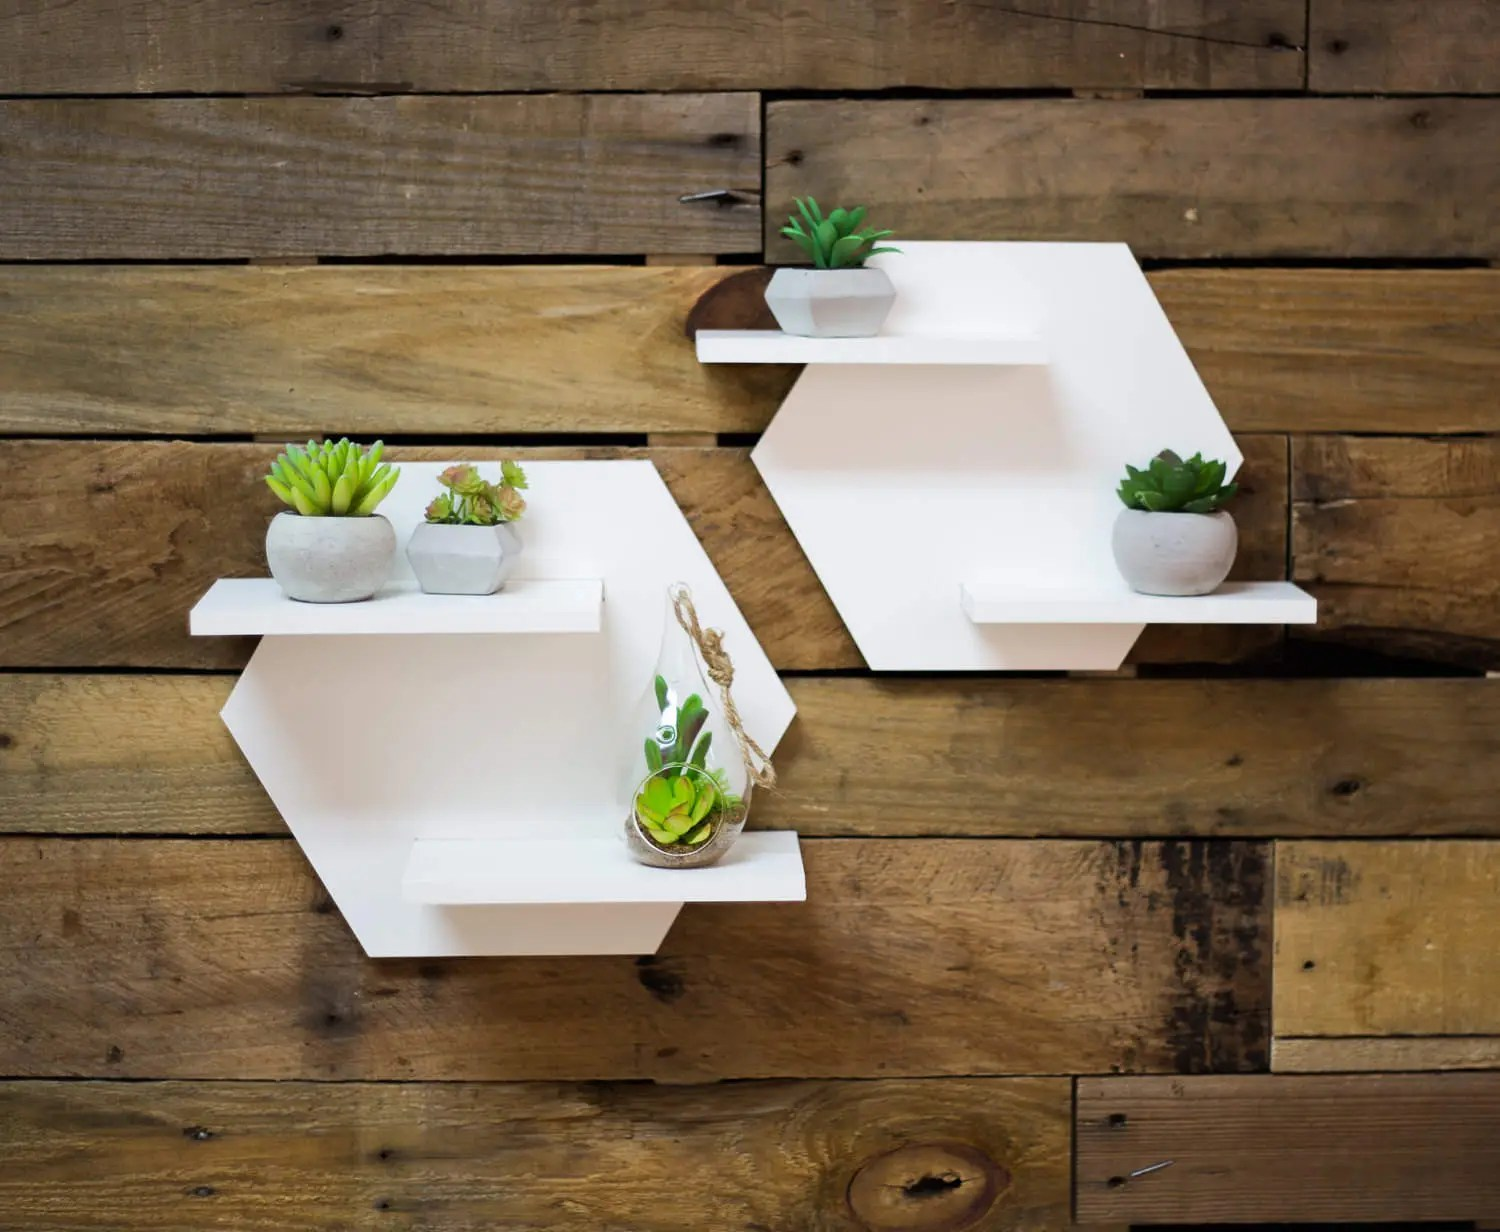 Home Decoration Collection Hexagon Shelf Set For Wall Home Decoration White Shelves For Wall Plant Holder Minimalist Style Room Wall Decor Artwork Item Hes520